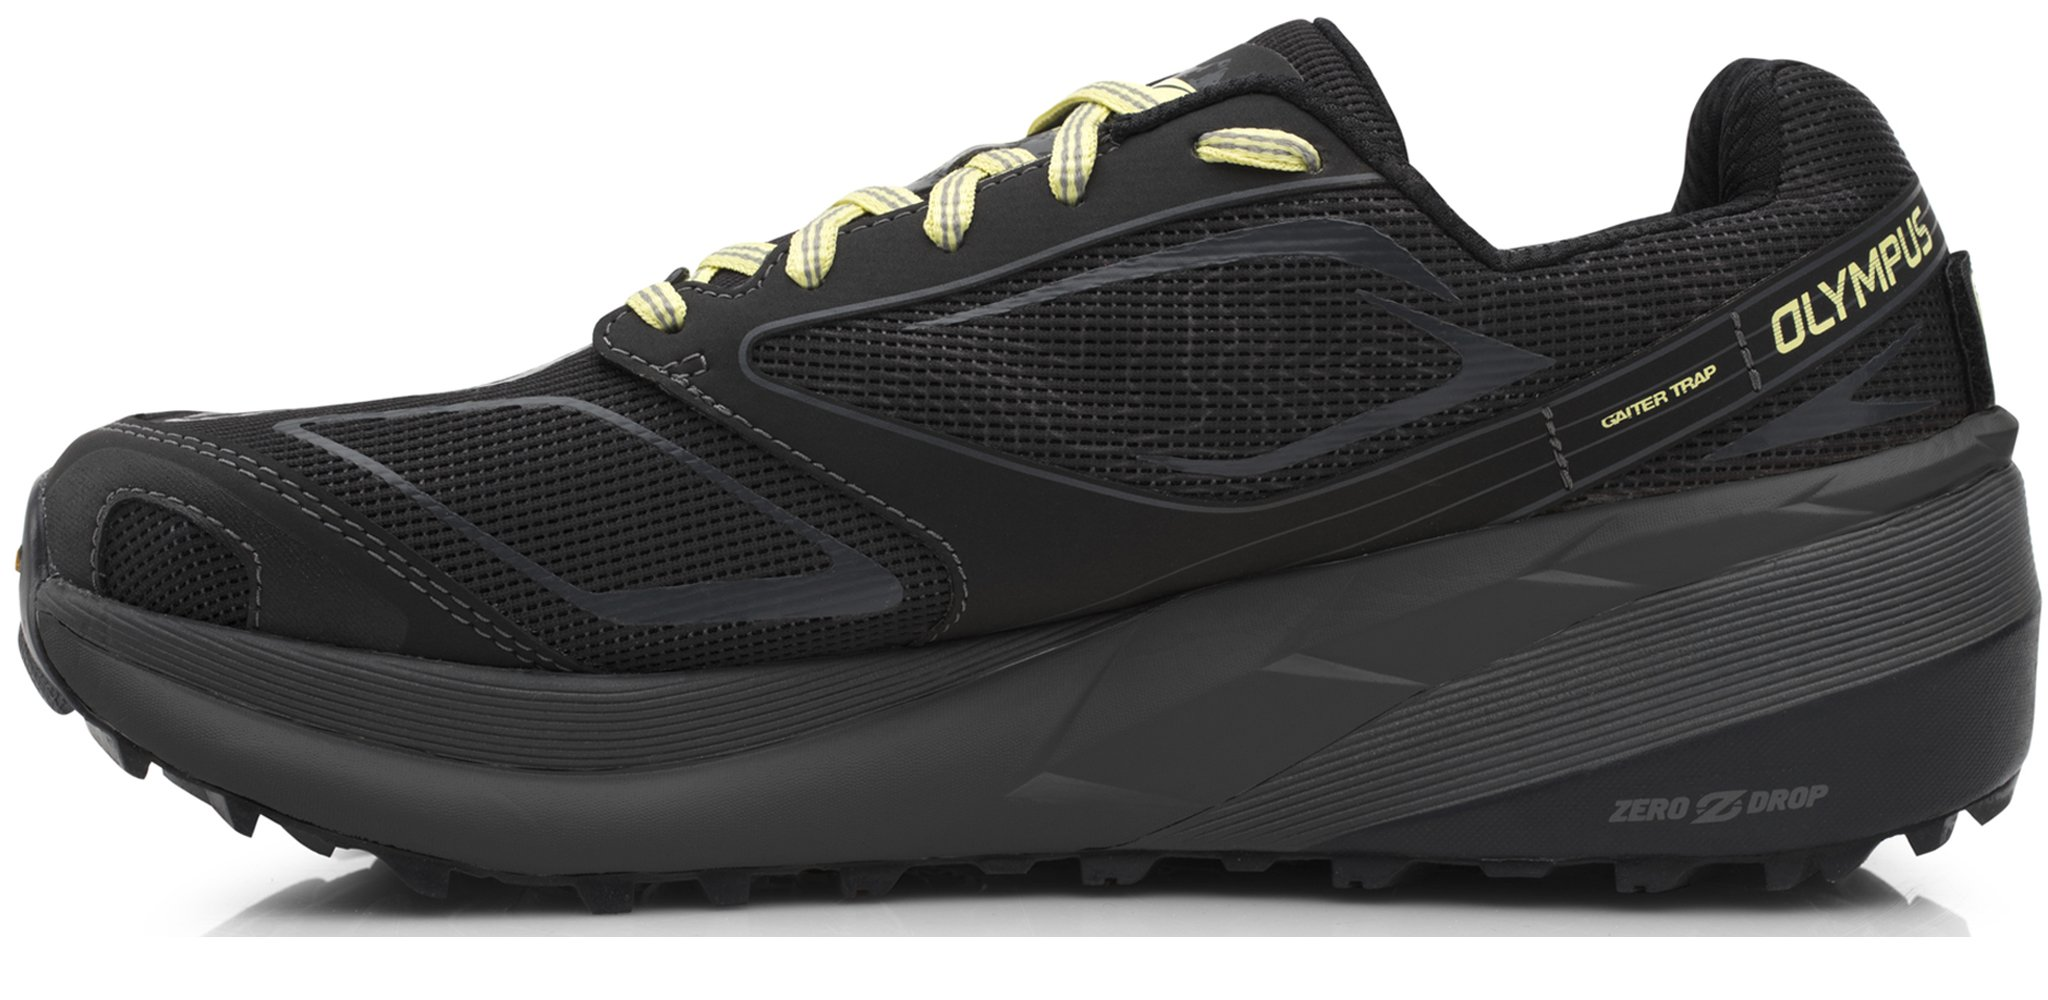 Altra AFW1859F Women's Olympus 3 Trail Running Shoe, Black - 5.5 B(M) US by Altra (Image #2)